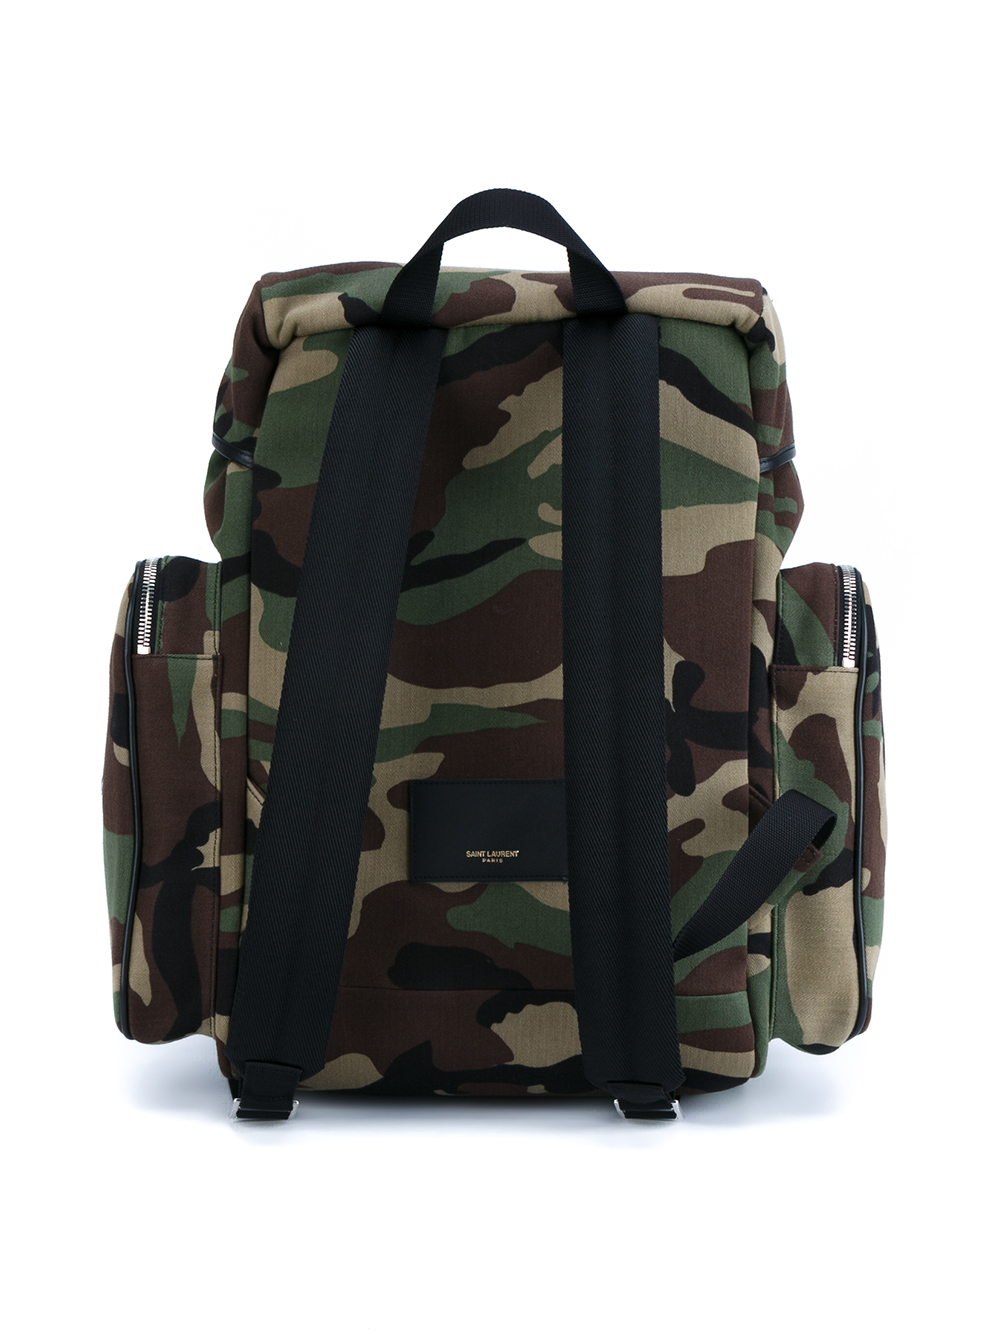 Lyst - Saint Laurent Camouflage Backpack in Green for Men 5acf6f252c